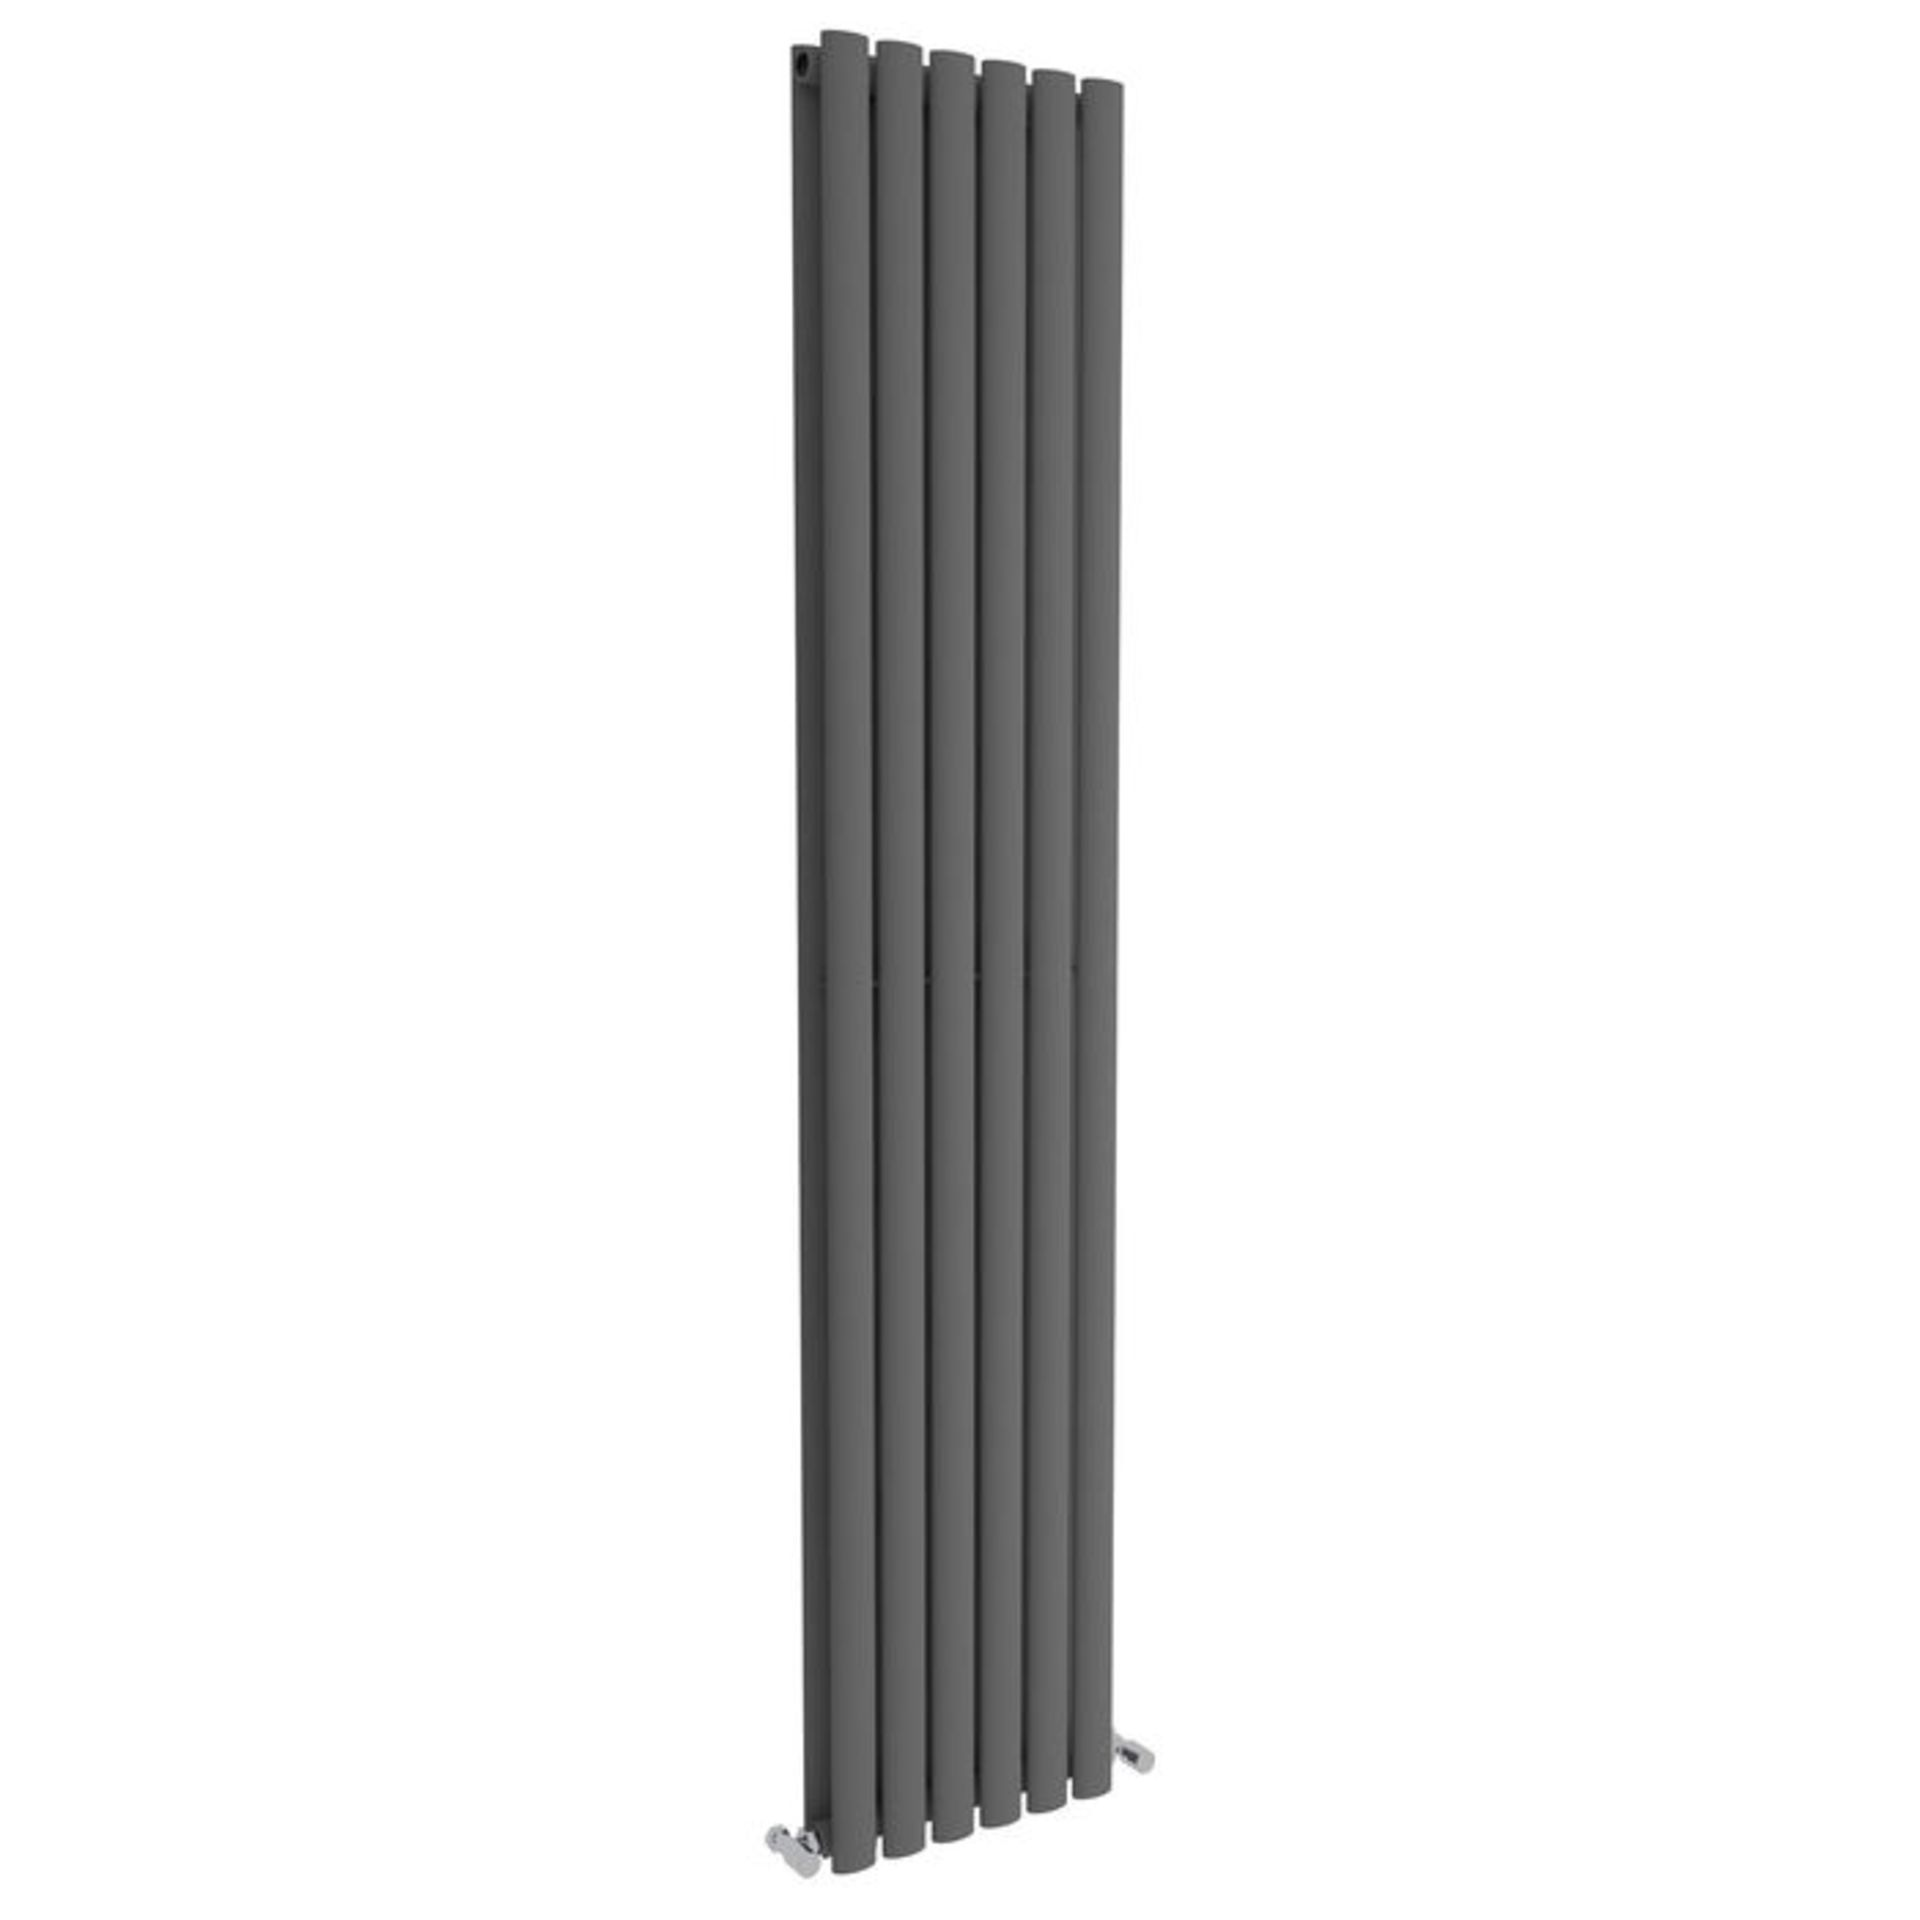 Lot 23 - 1800x360mm Anthracite Double Oval Tube Vertical Radiator. RRP £344.99. Made from high quality ...